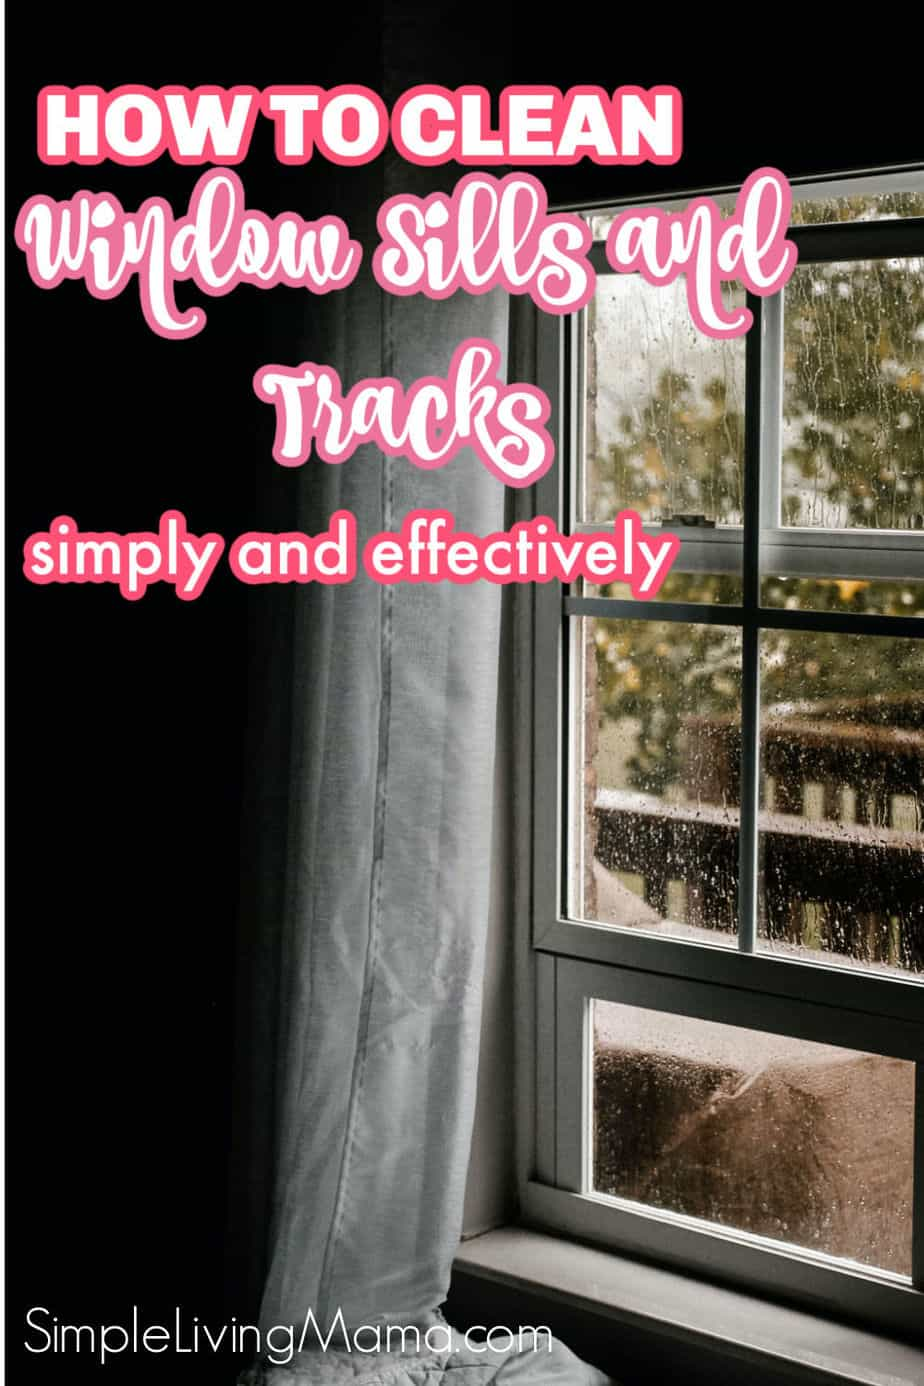 How to clean window sills and tracks